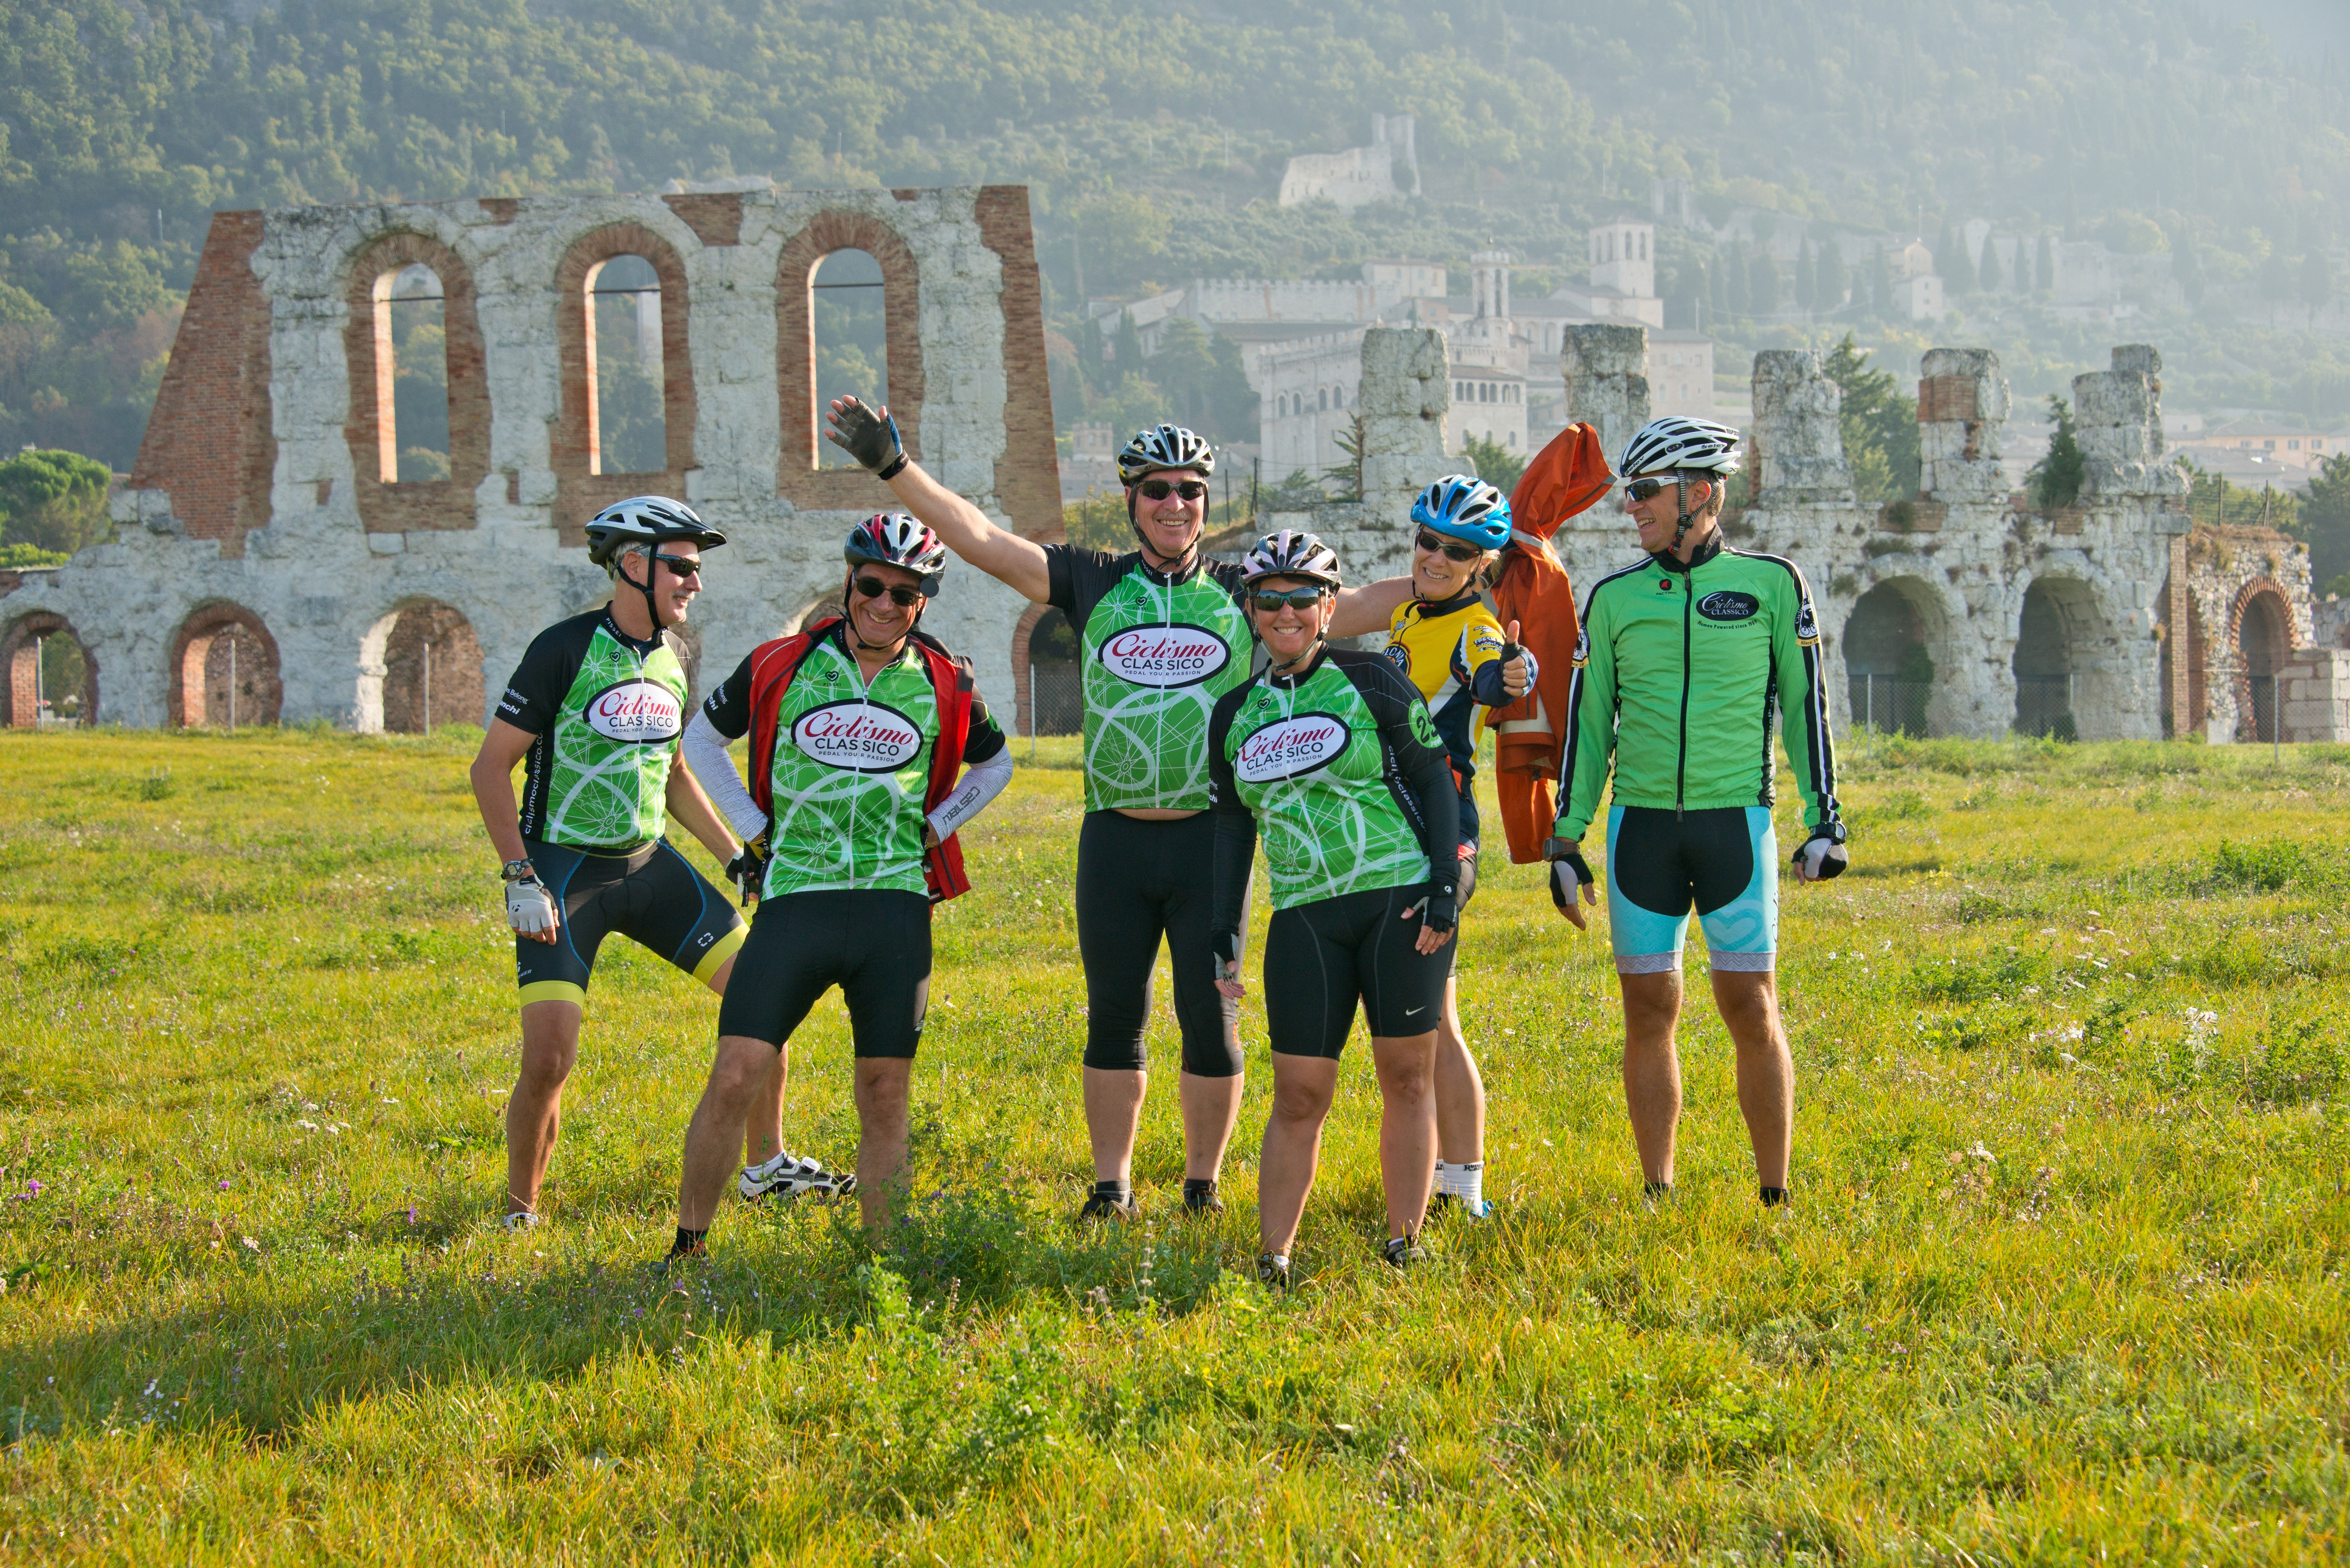 A photograph of a group of cyclists posing in front of medieval ruins.